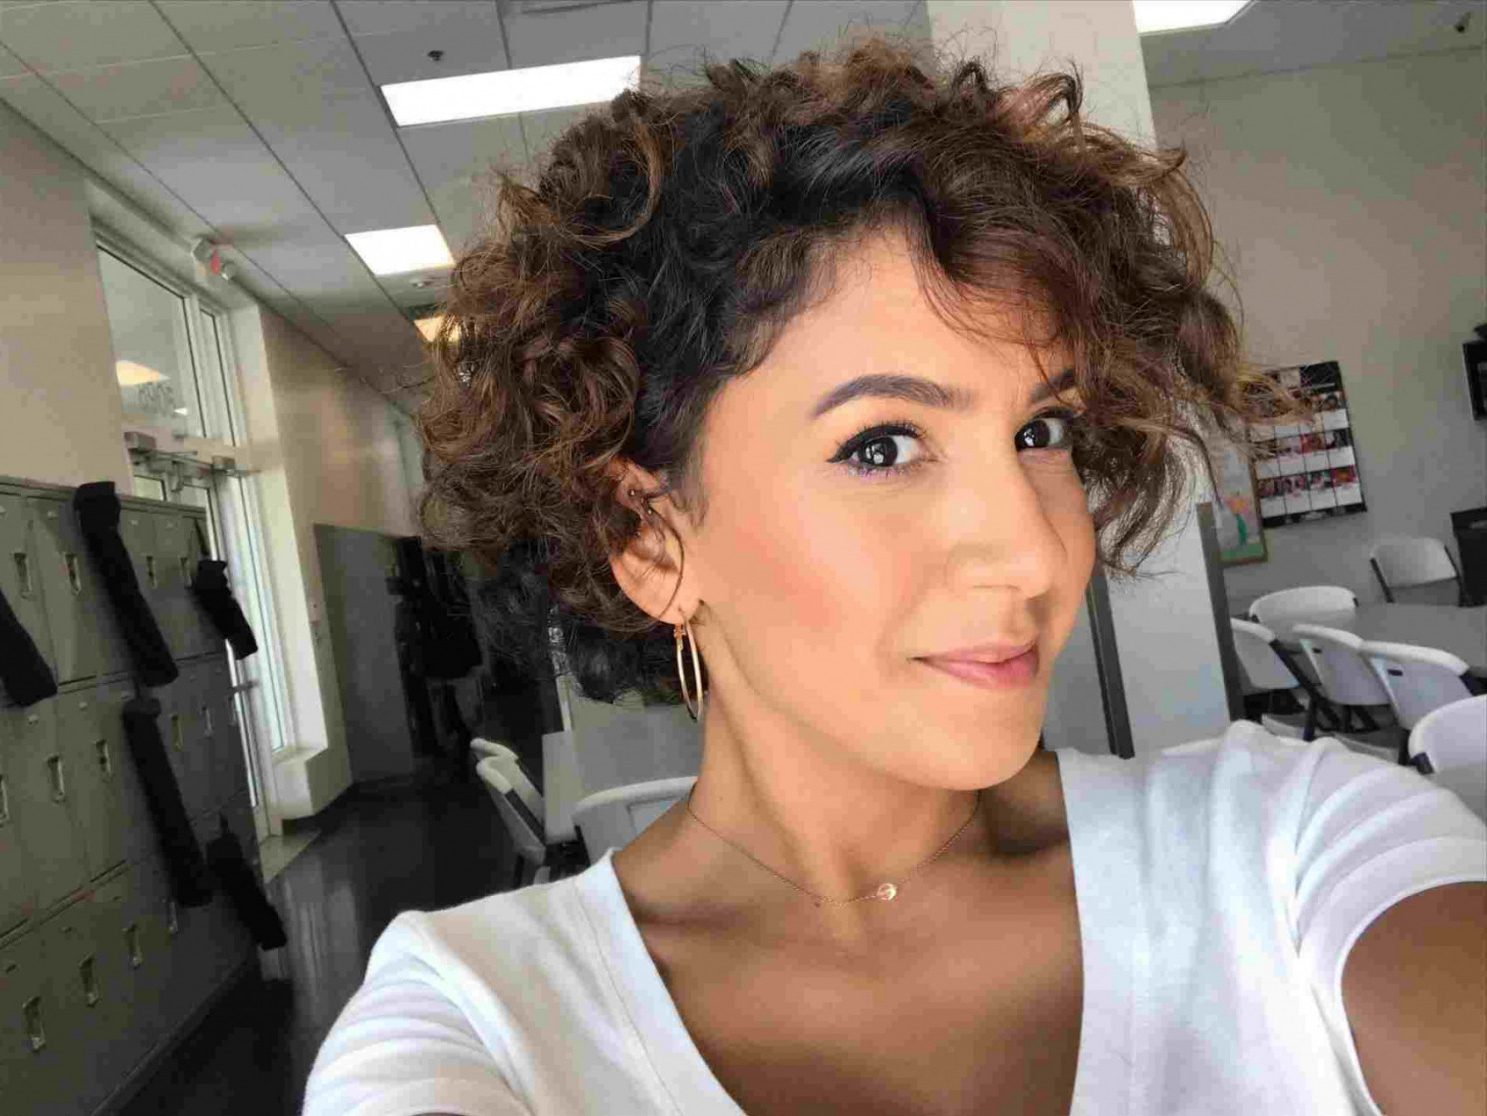 Latest Medium Hairstyles For Round Faces Curly Hair Inside Medium Bob Haircut Curly Hair Round Face Length Curly Hairstyles For (Gallery 11 of 20)